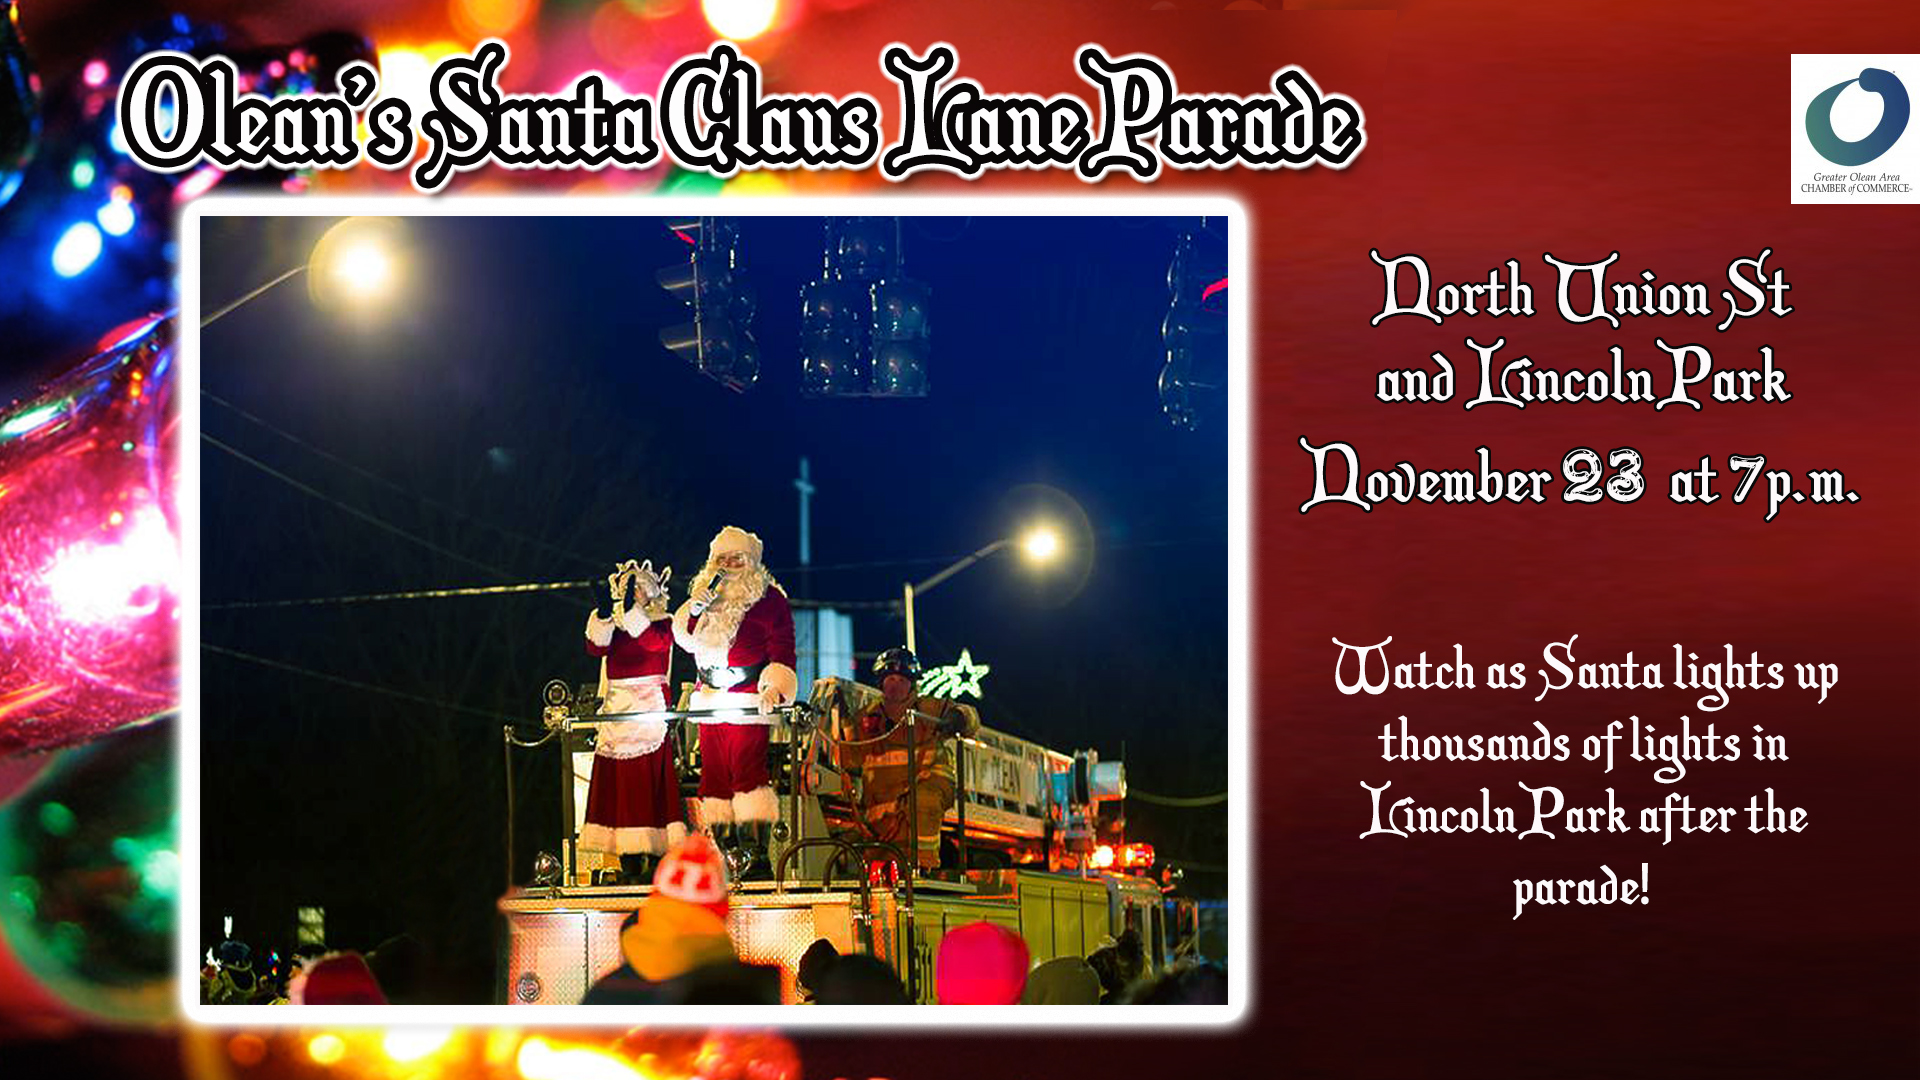 2018 Olean Santa Claus Lane Parade